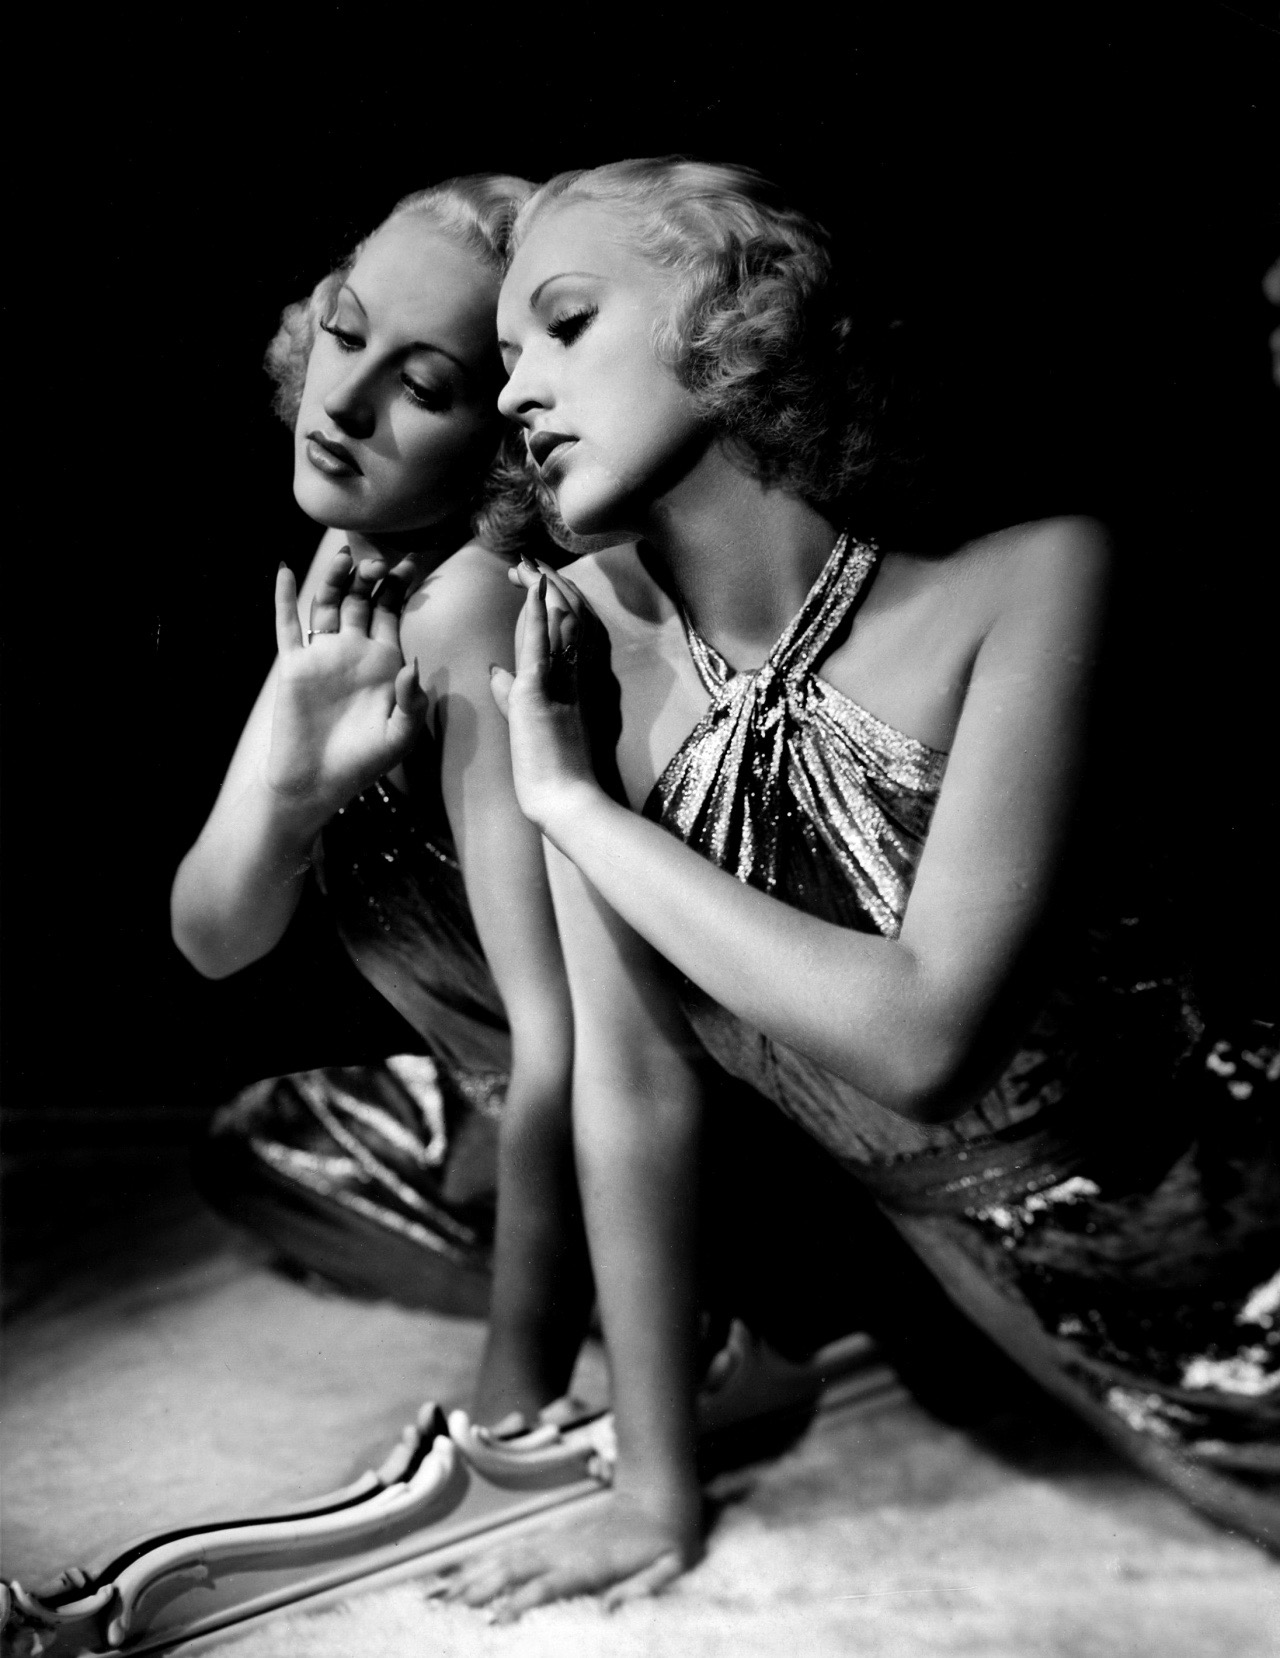 Admit it, when you think of betty Grable you are thinking: legs. But Eugene-Robert Richee's 1930s portrait of Grable goes beyond the obvious.